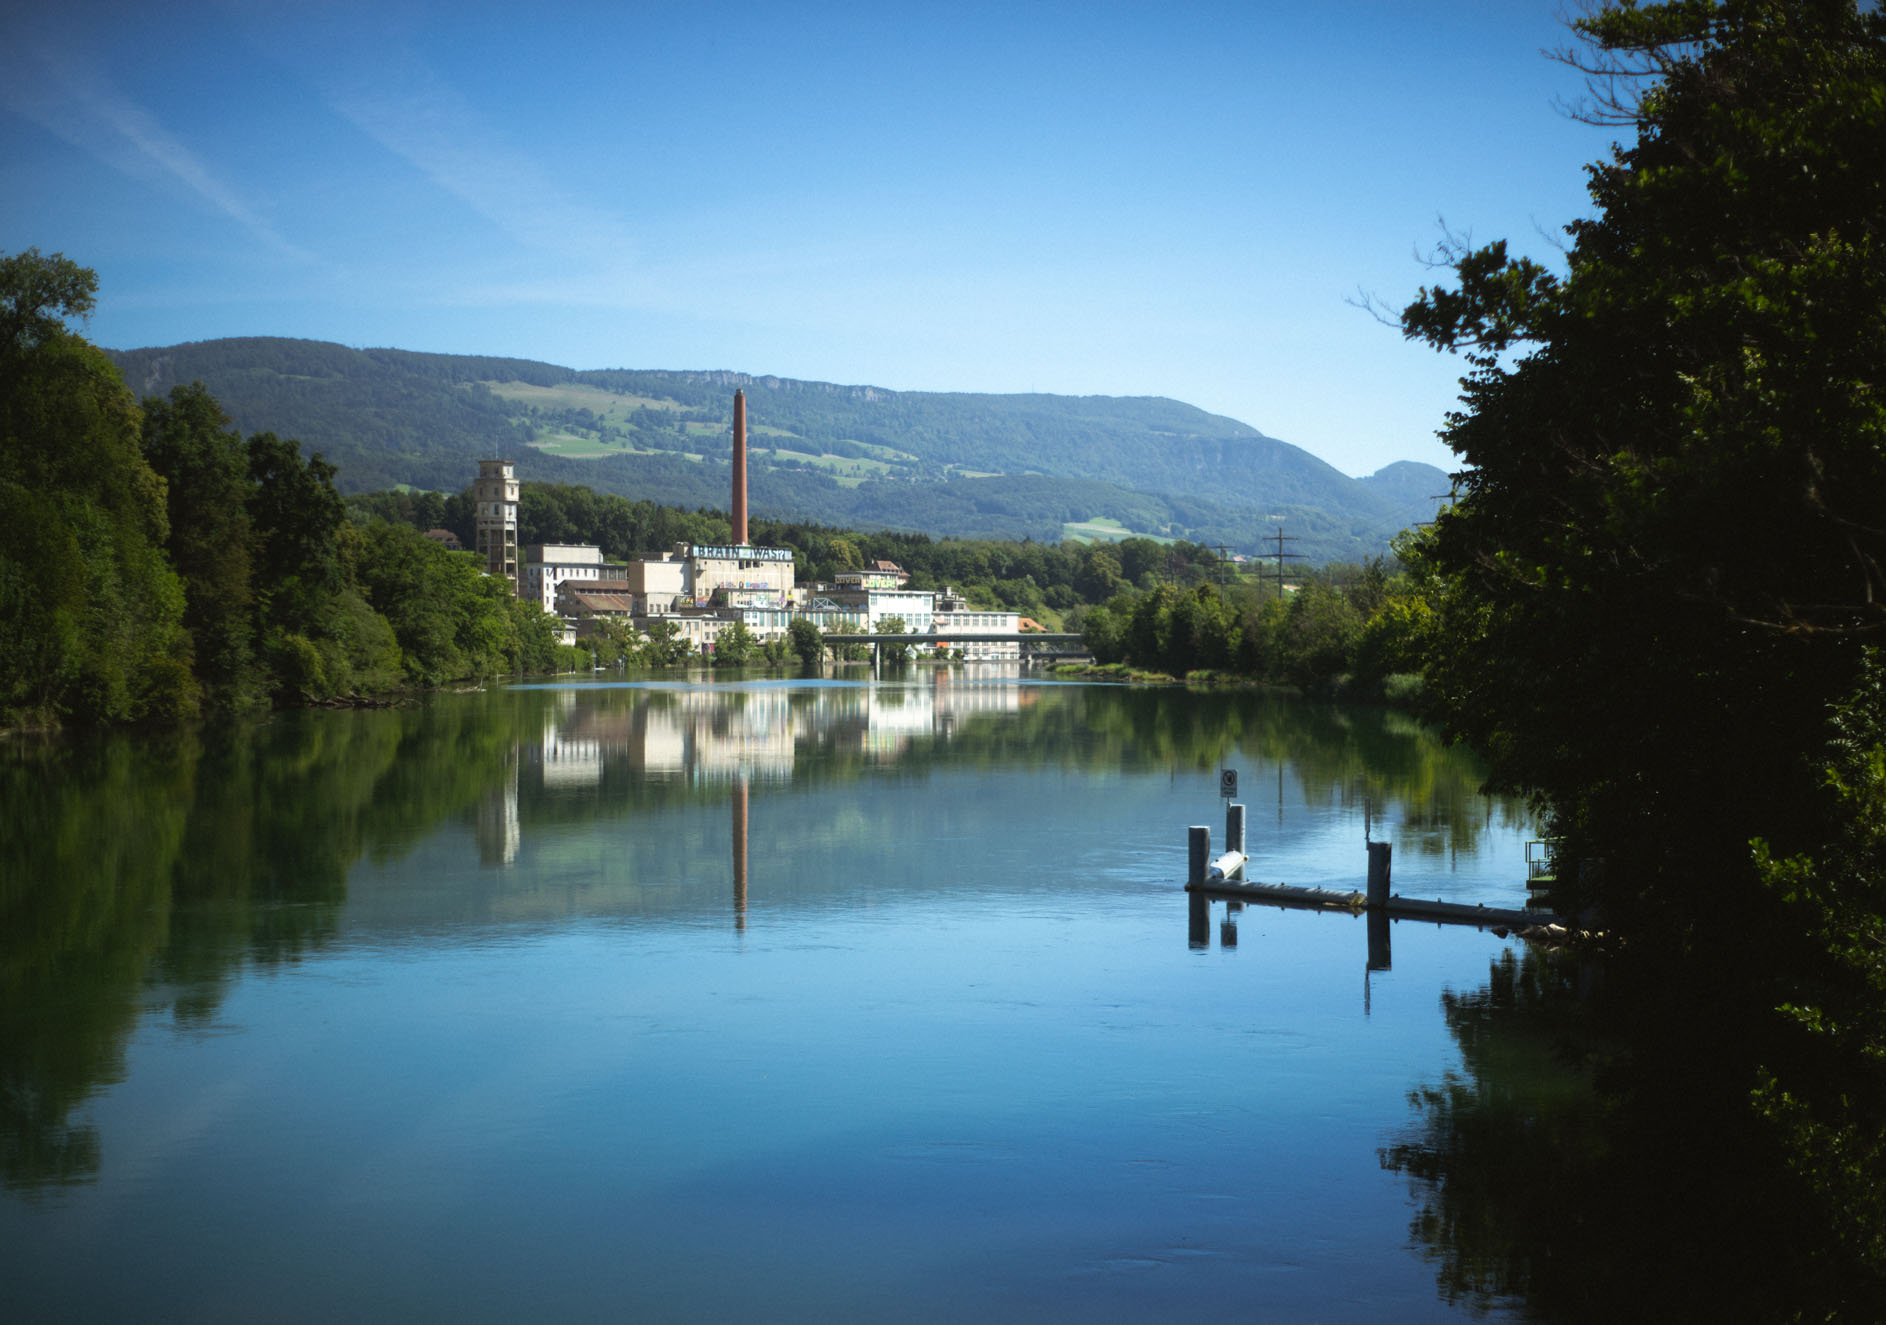 By the Aare